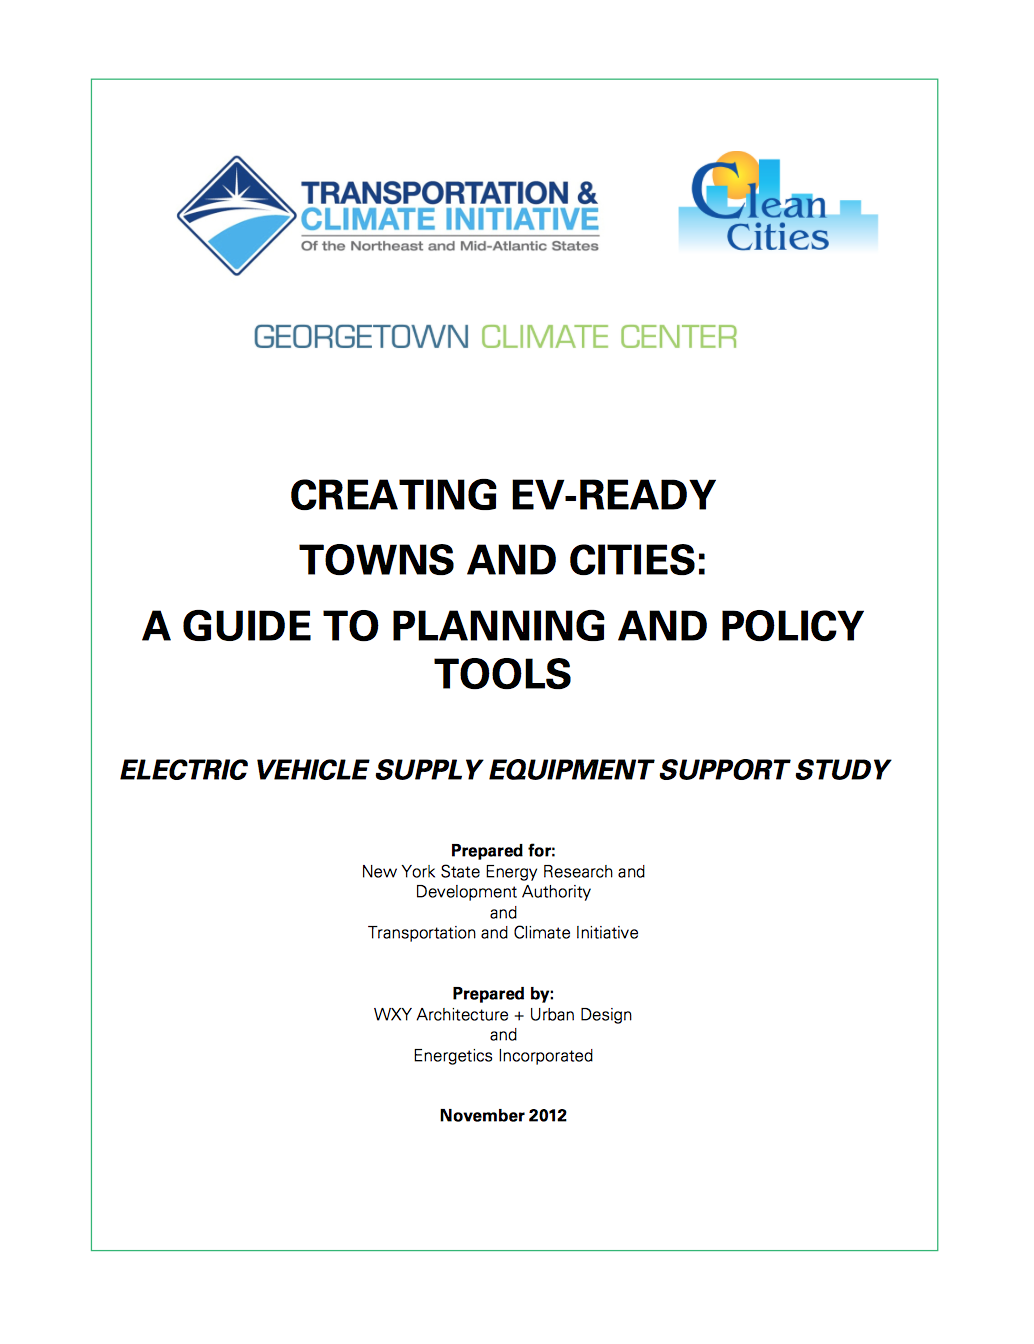 Creating EV-Ready Towns and Cities: A Guide to Planning and Policy Tools